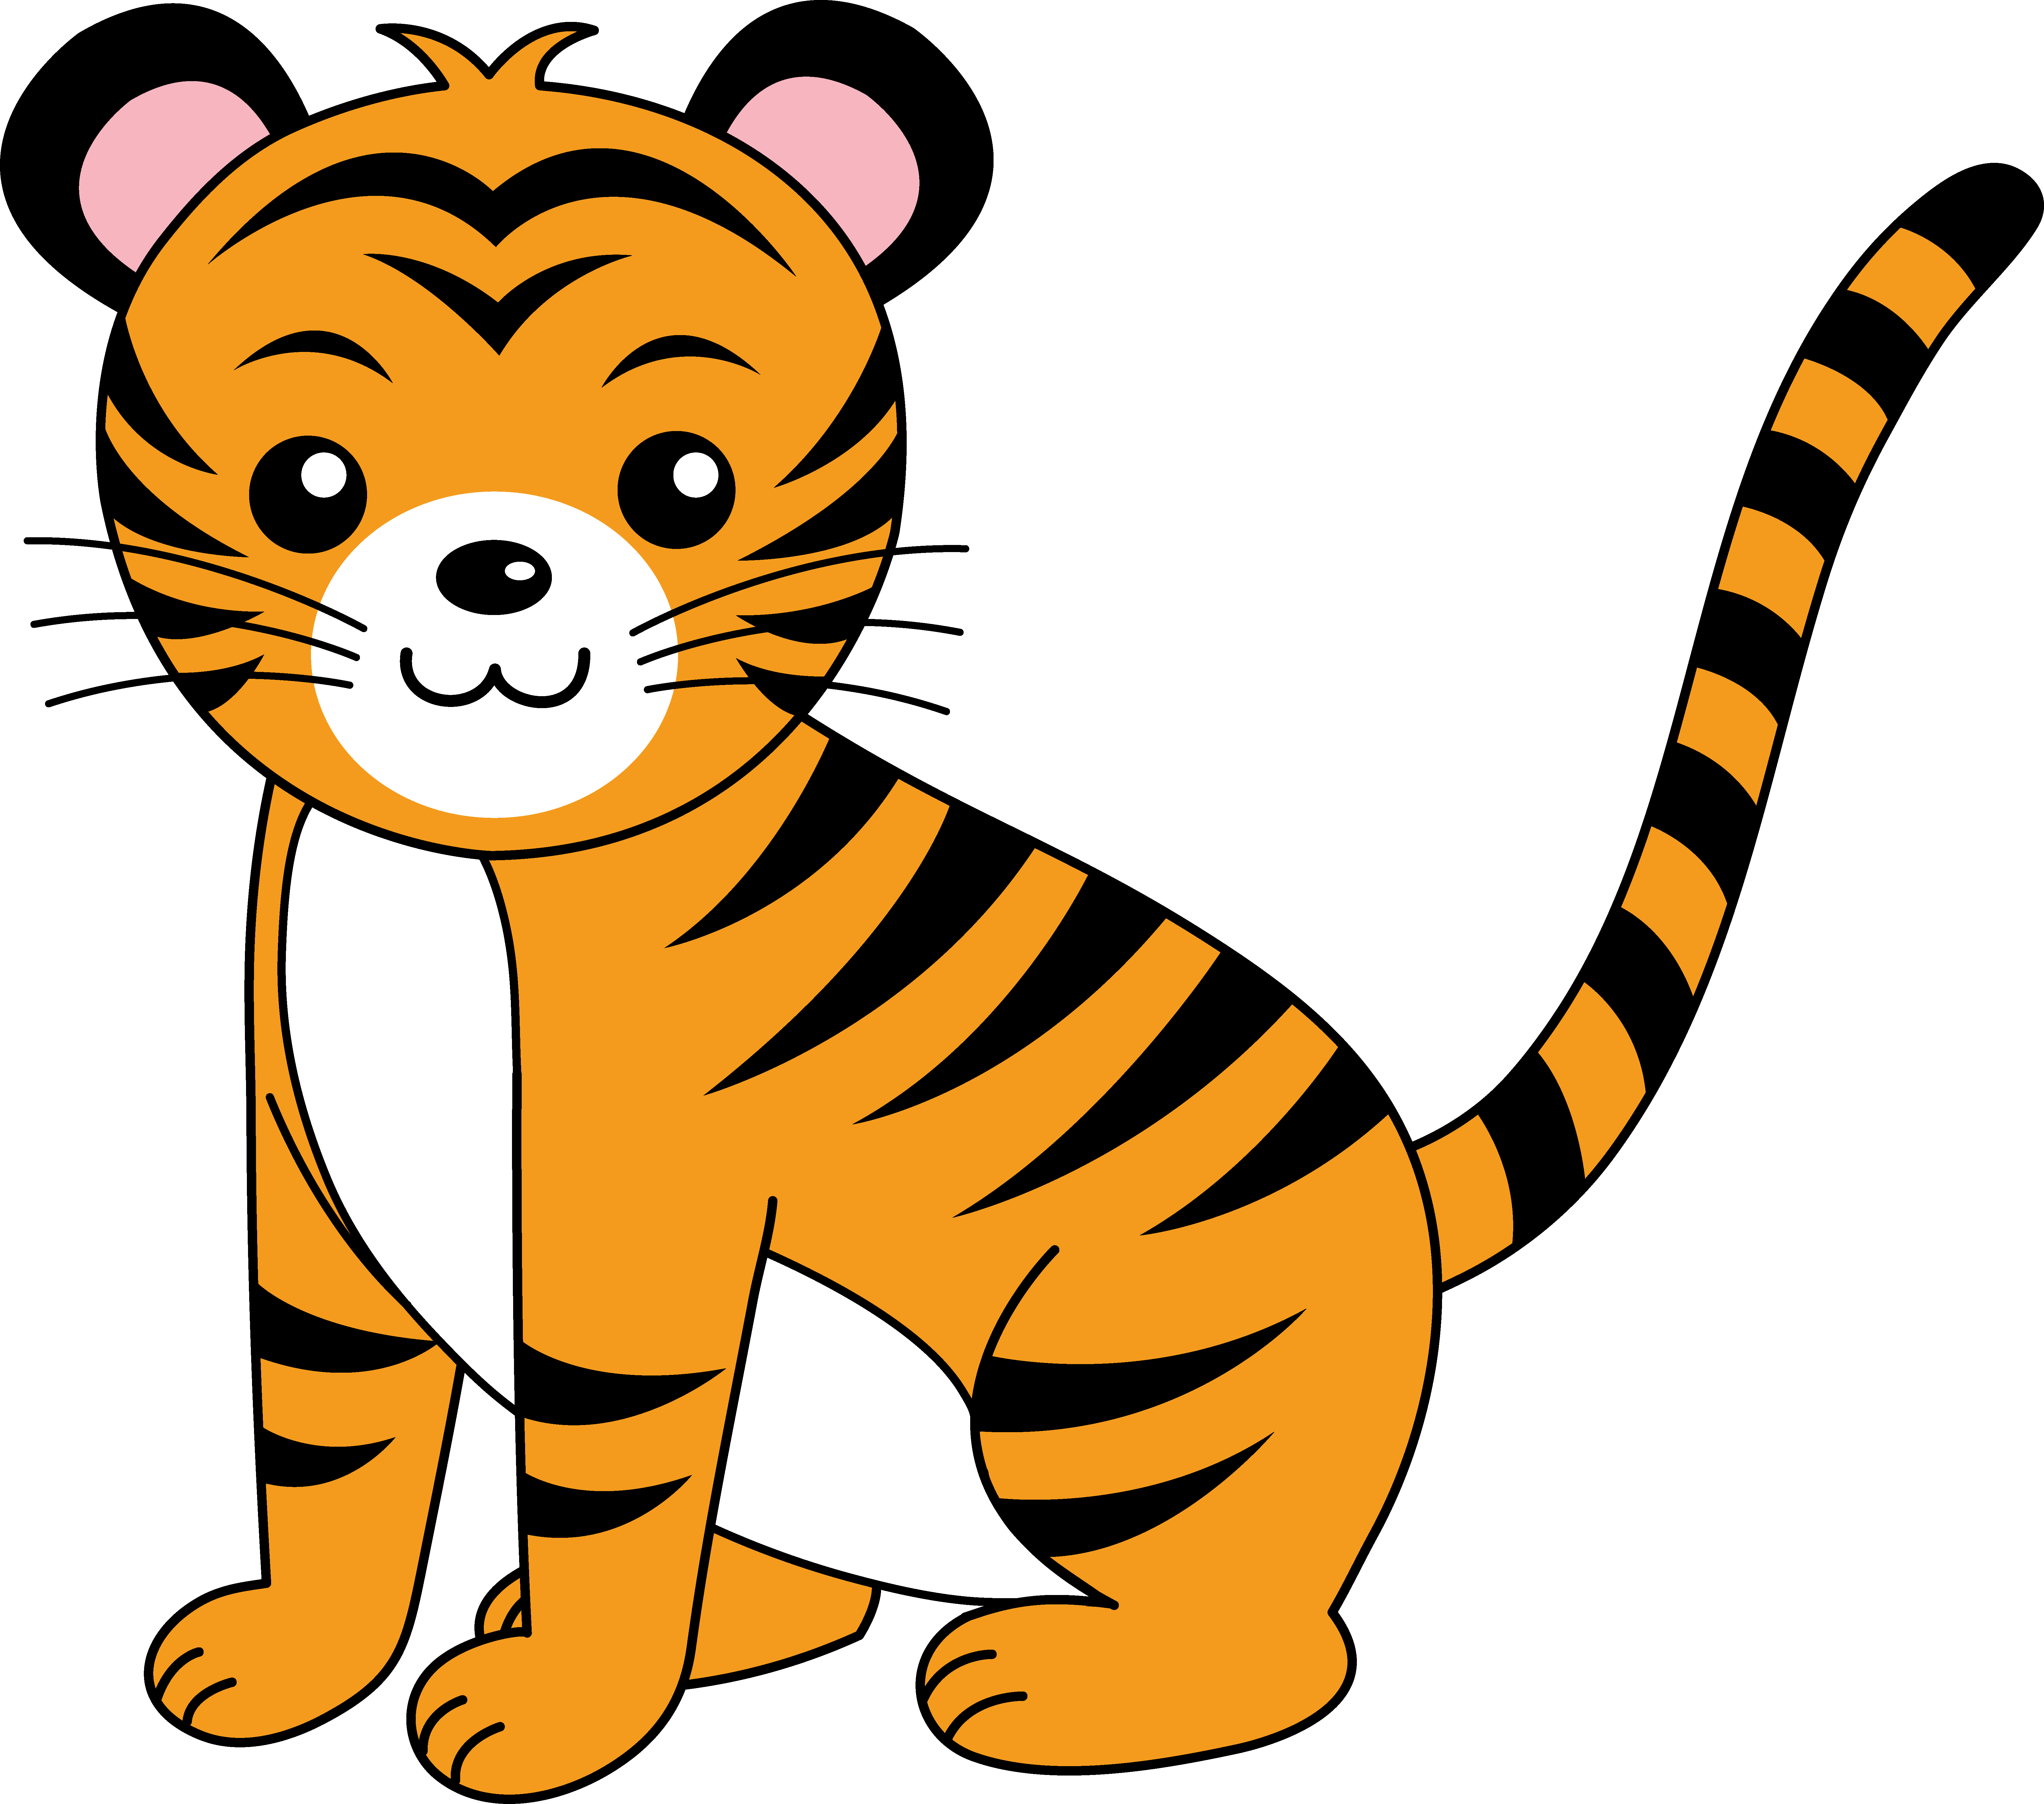 free tiger clipart at getdrawings com free for personal use free rh getdrawings com Panda Clip Art Parrot Clip Art